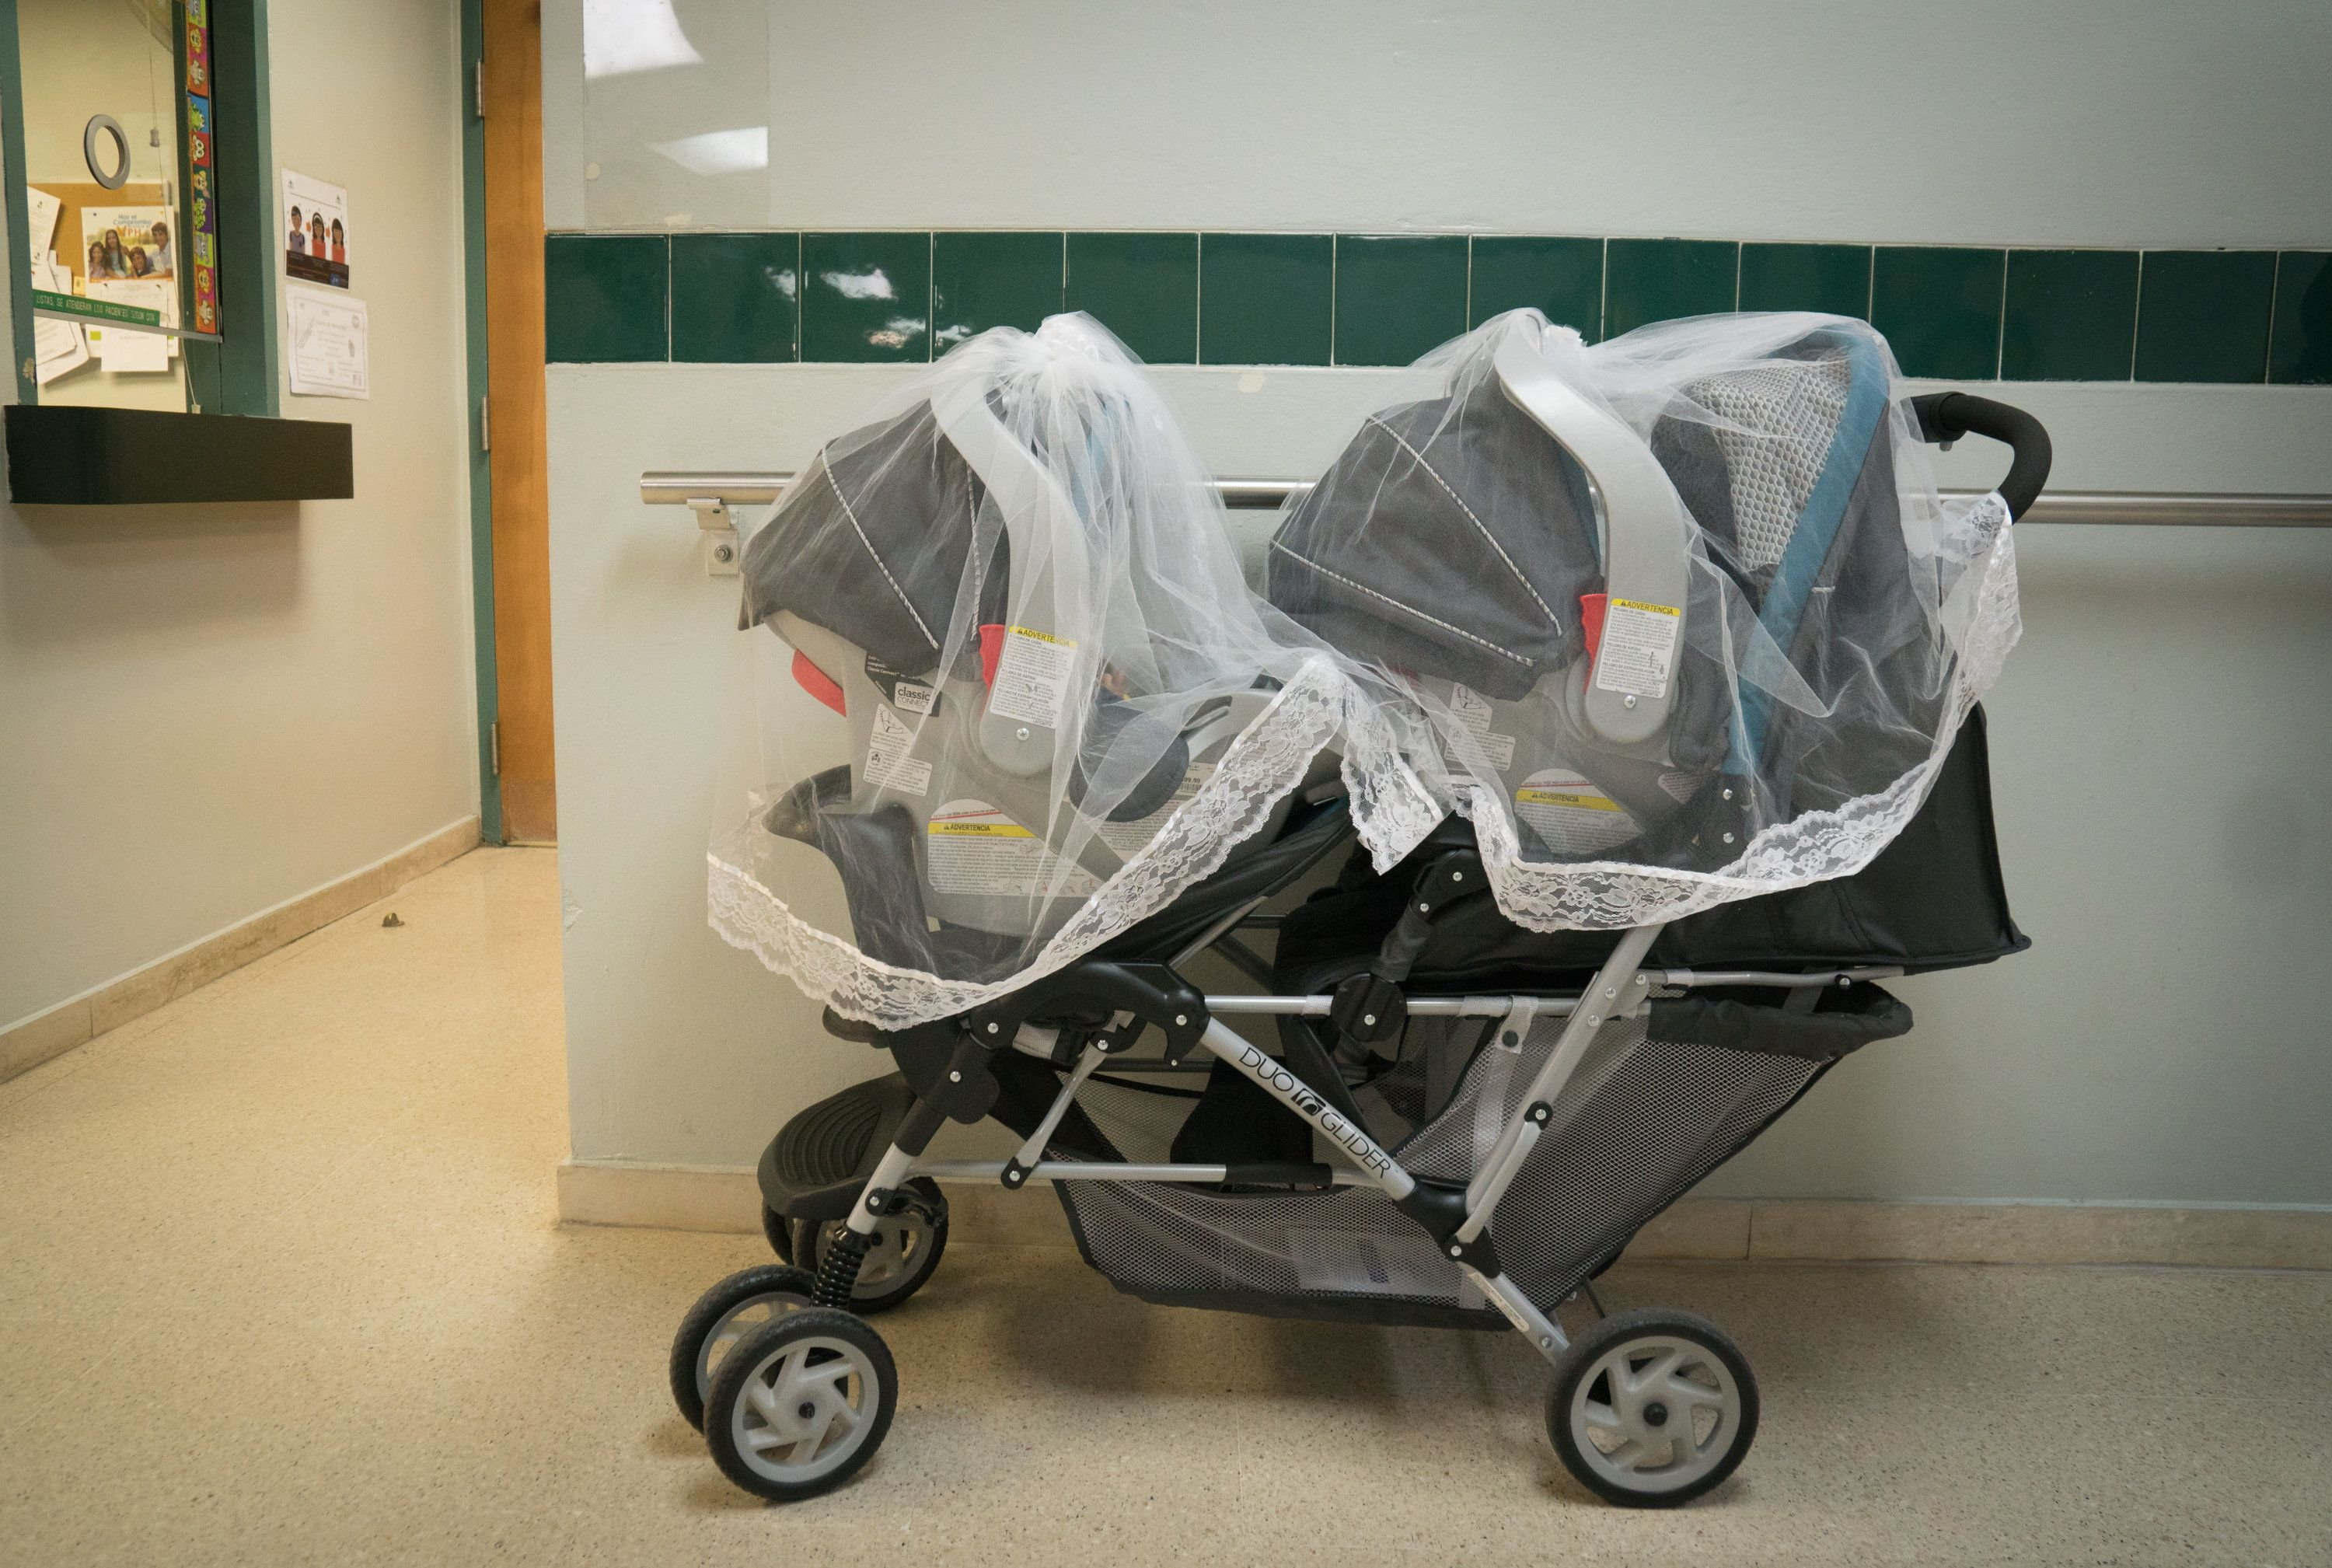 The mosquito net-covered stroller where 2-month-old twins Misael and Ismael Carrasquillo slept during a visit for regular vac